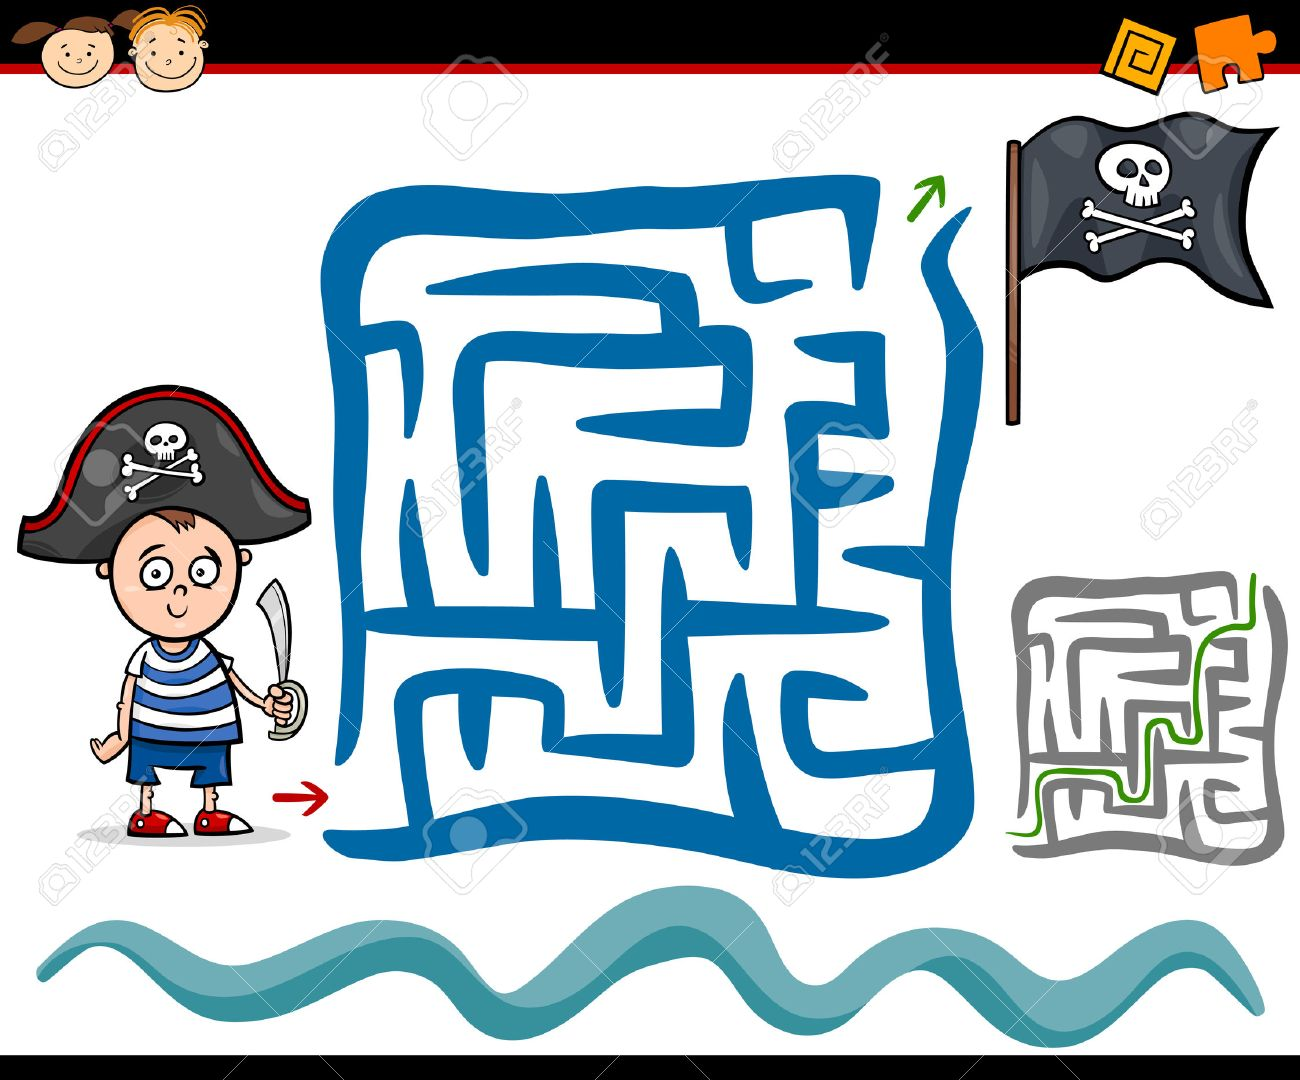 2 324 pirate kids cliparts stock vector and royalty free pirate